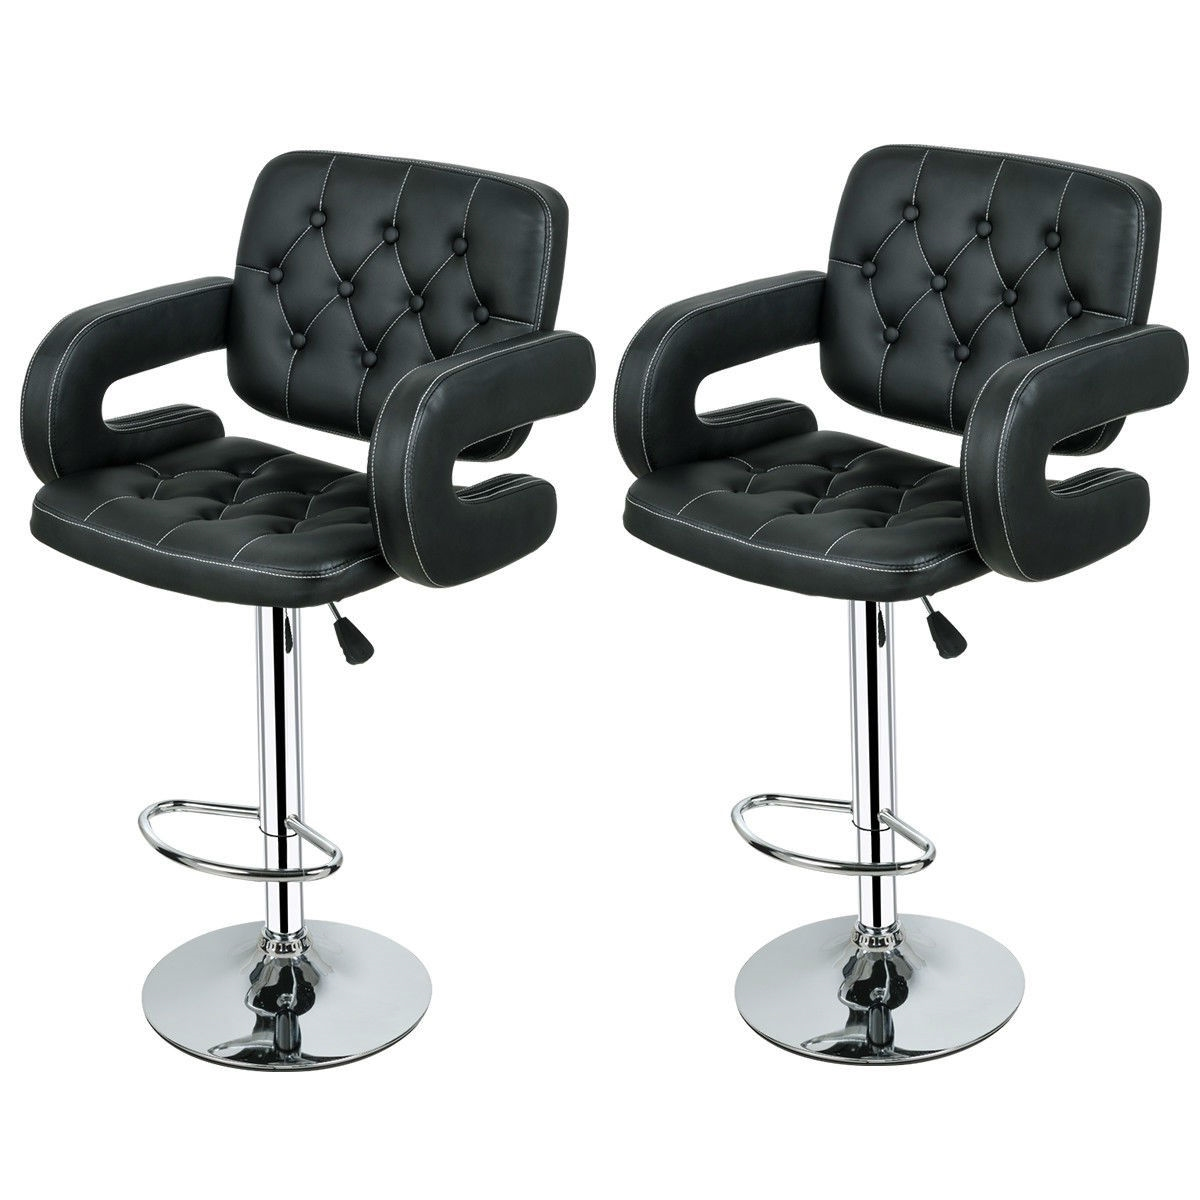 Picture of: Set Of 2 Black Faux Leather Swivel Bar Stools Adjustable Pub Chair Fastfurnishings Com